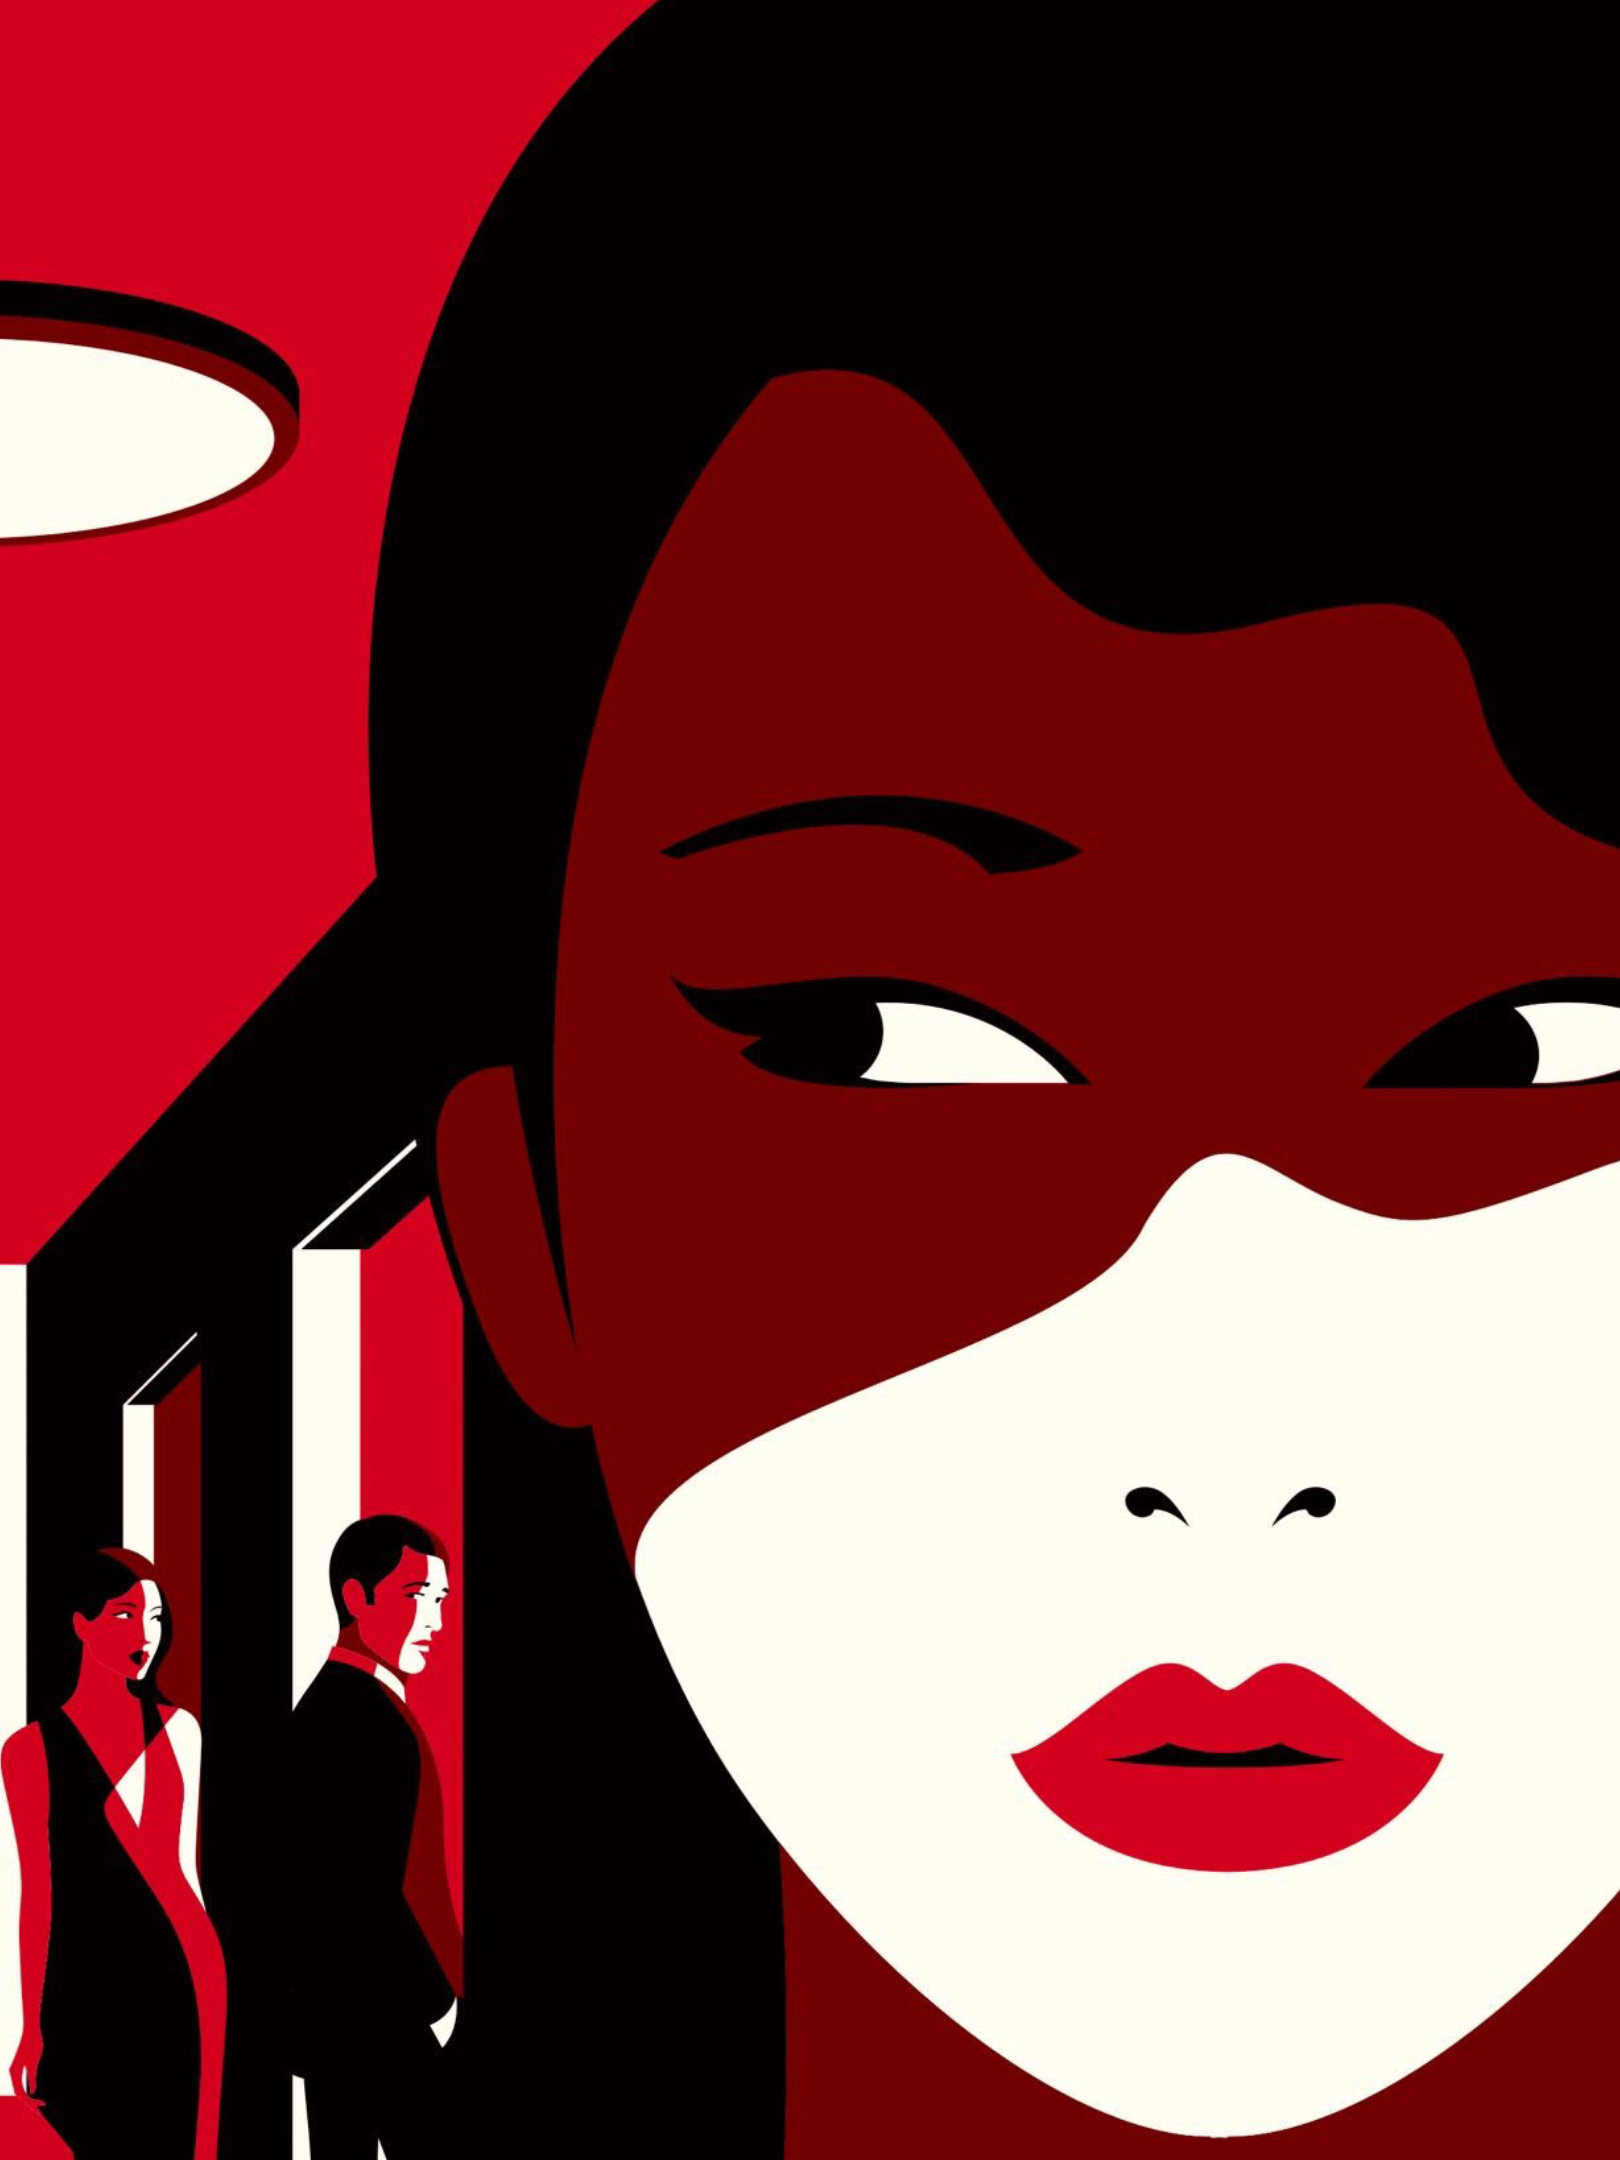 China S Mistress Dispellers Detail Portrait Illustration By Malika Favre For The New Yorker Magazine Article Of Gen Portrait Illustration Illustration Artist